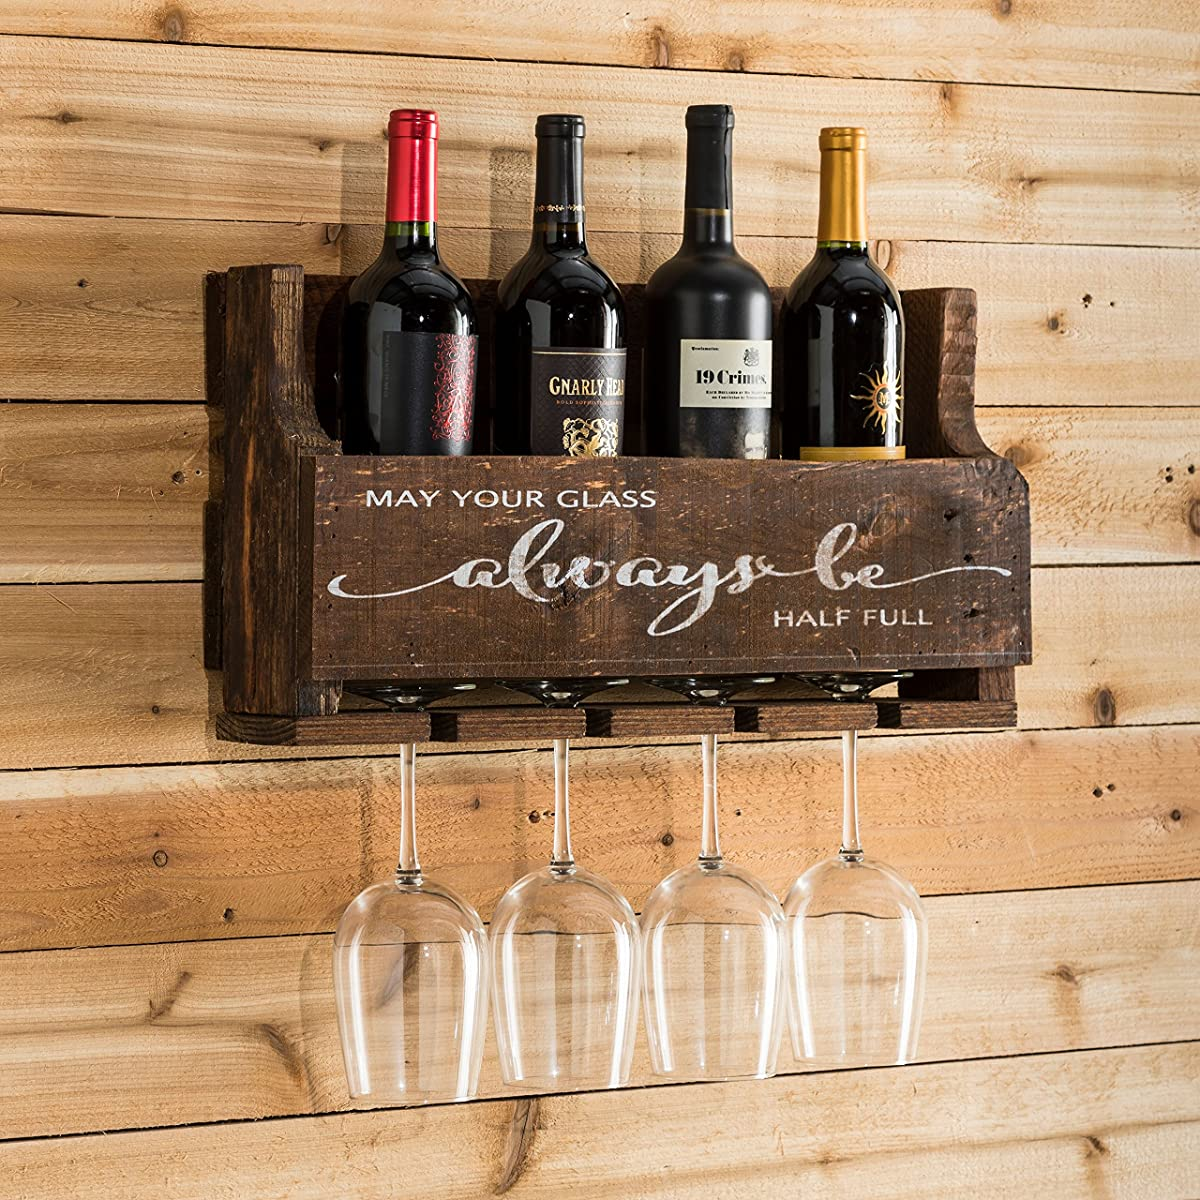 del Hutson Designs The Little Elm Wine Rack w/Quote May Your Glass Alway Be Half Full, USA Handmade Reclaimed Wood, Wall Mounted, 4 Bottle 4 Long Stem Glass Holder (Walnut)